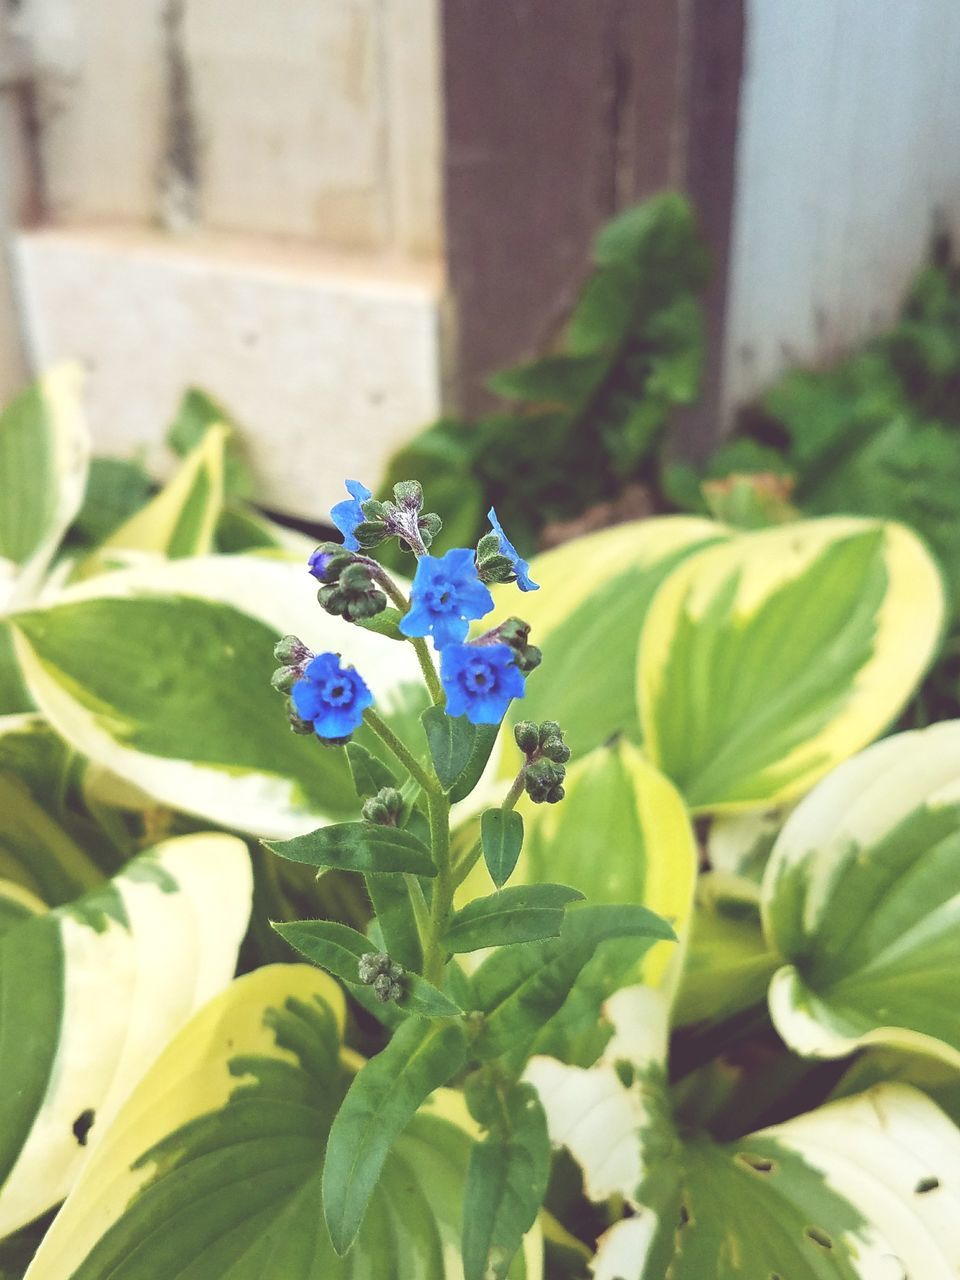 flower, petal, fragility, growth, day, freshness, leaf, beauty in nature, nature, outdoors, green color, plant, no people, flower head, close-up